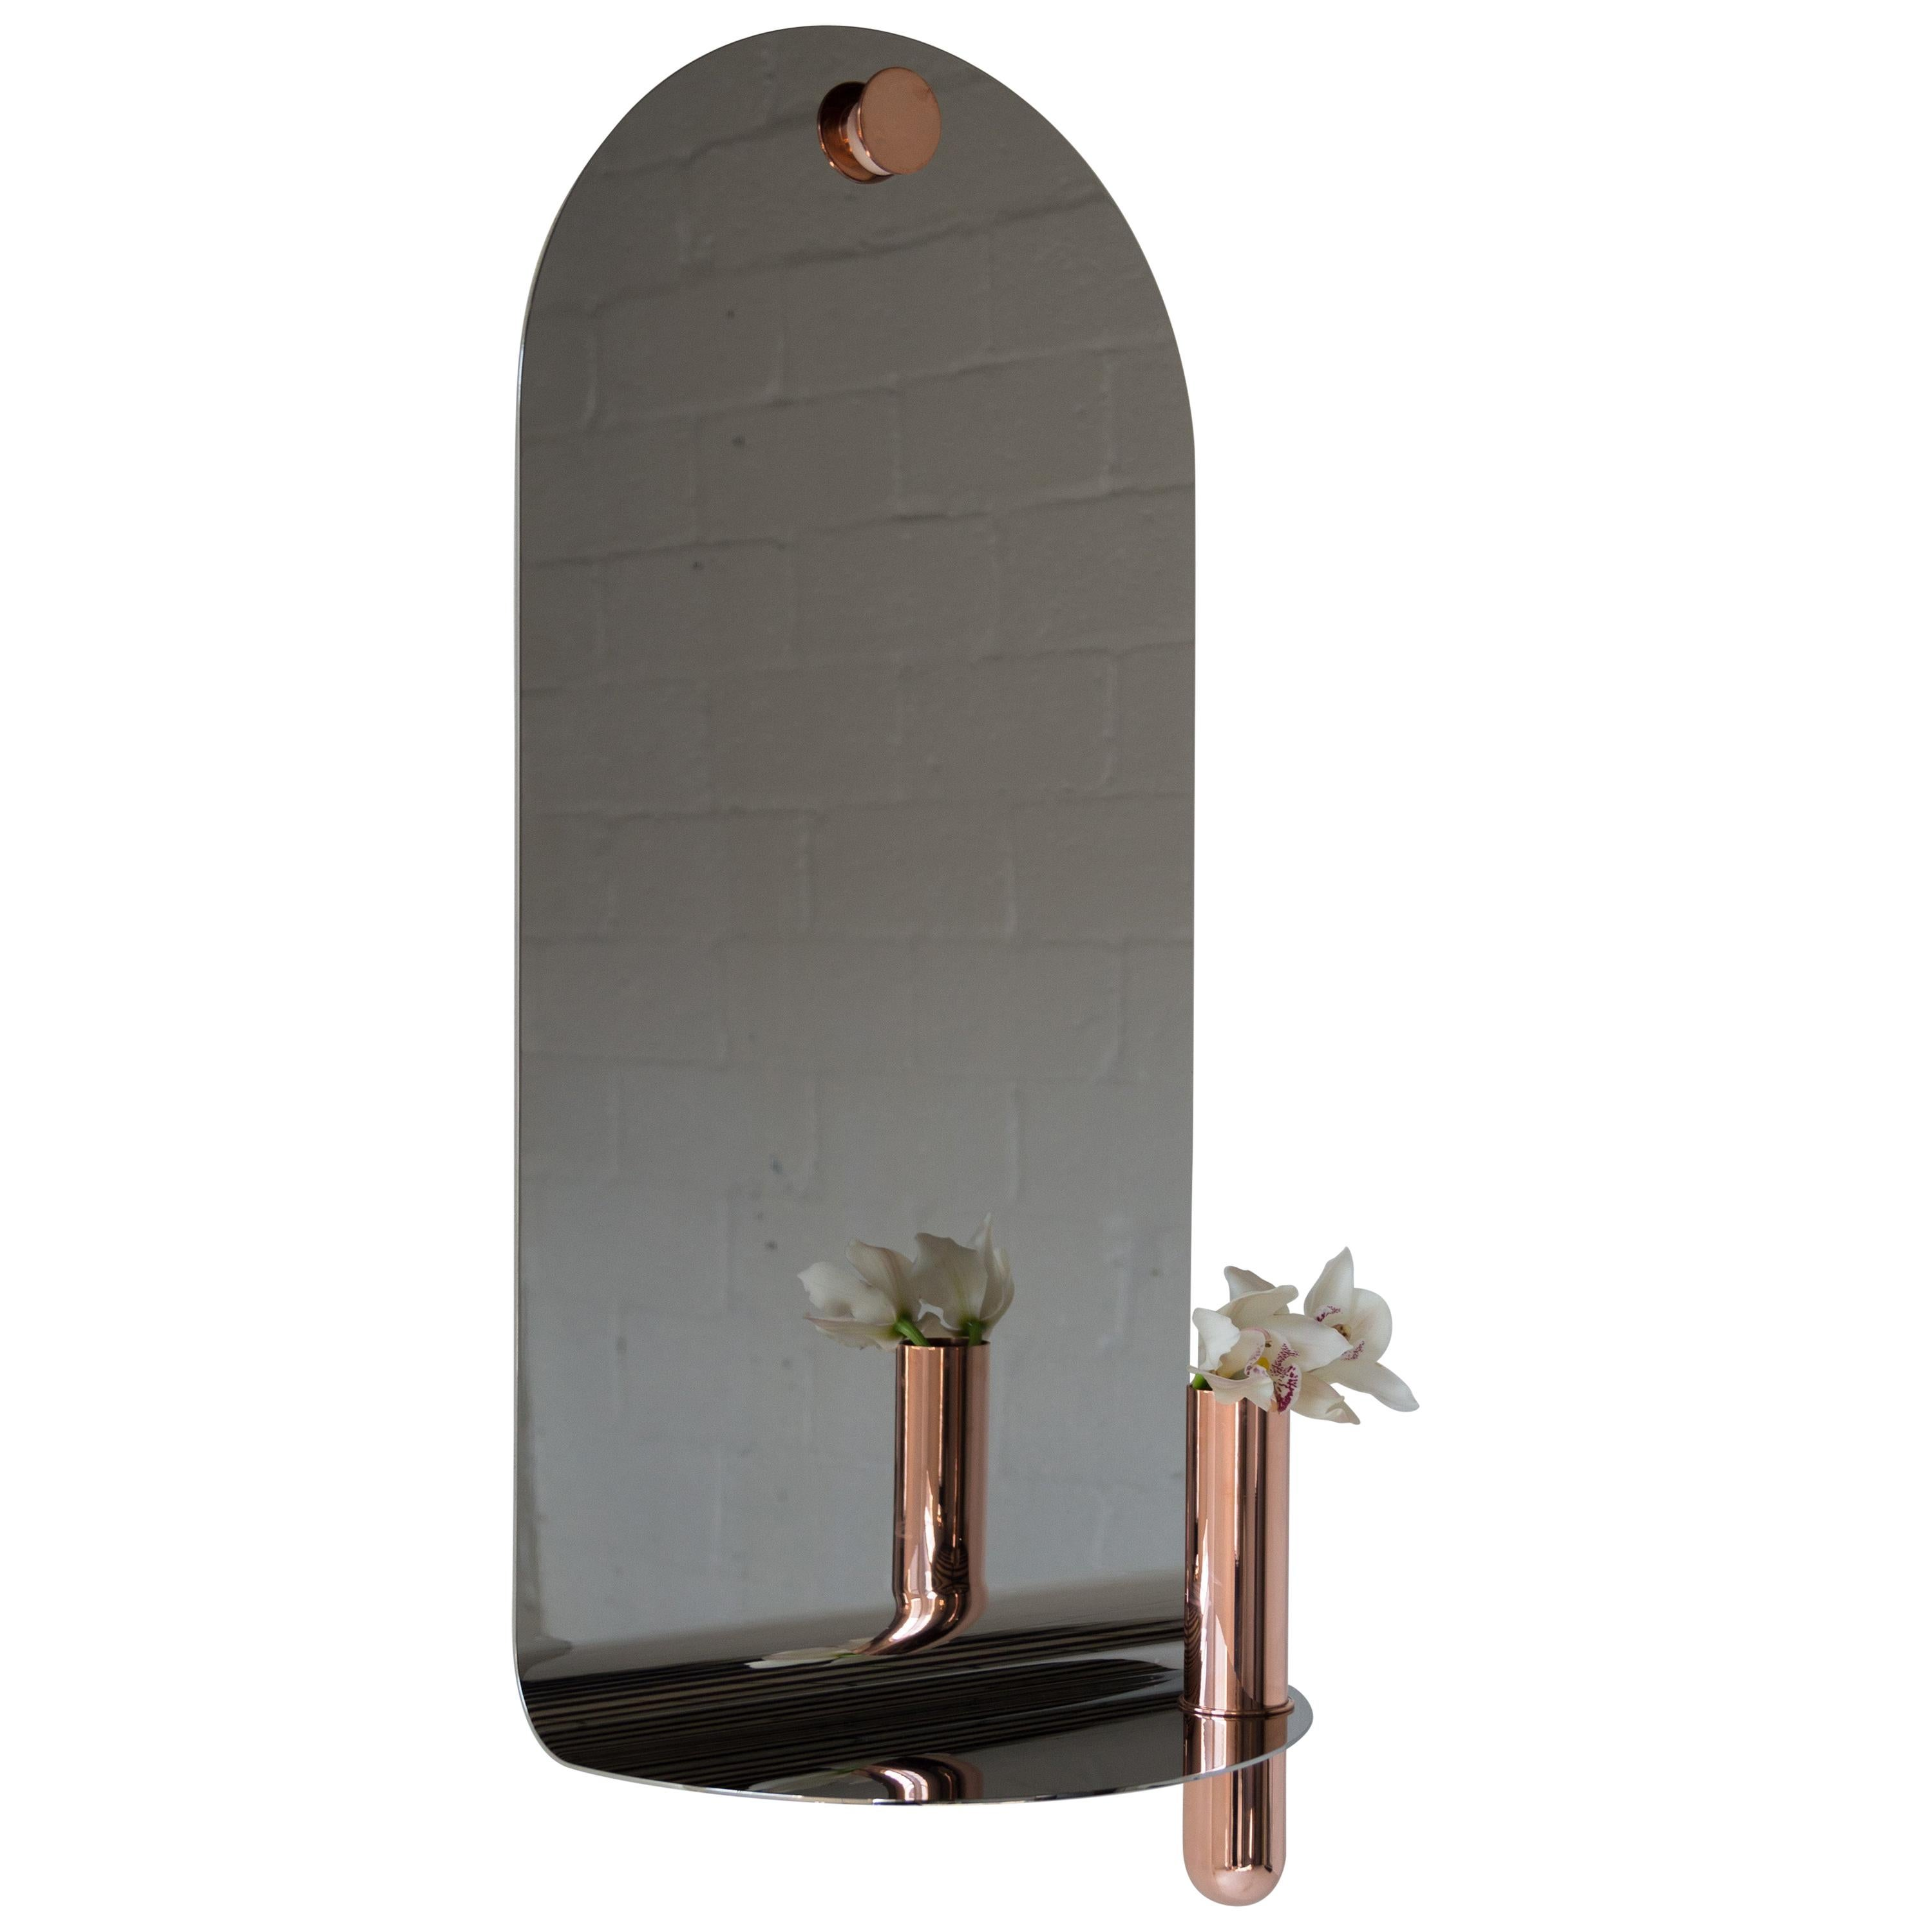 Polished Stainless Steel Mirror with Brushed Brass Vase by Birnam Wood Studio